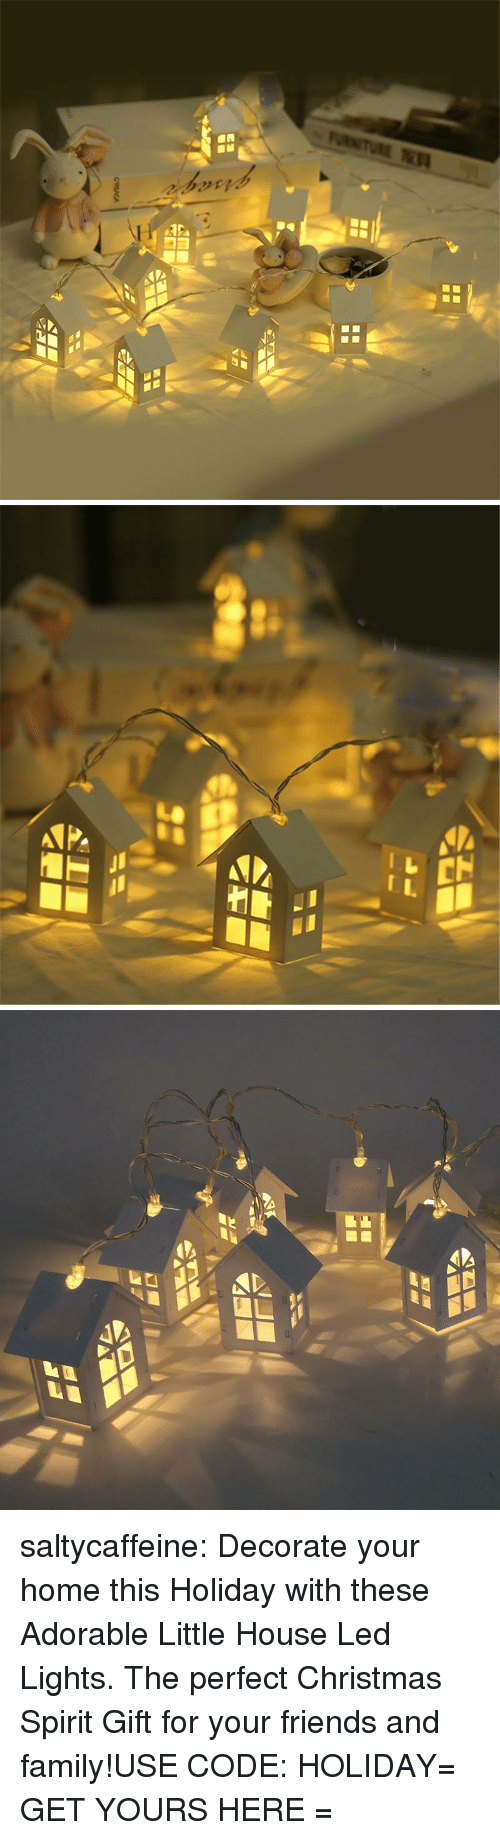 Christmas, Family, and Friends: saltycaffeine:  Decorate your home this Holiday with these Adorable Little House Led Lights. The perfect Christmas Spirit Gift for your friends and family!USE CODE: HOLIDAY= GET YOURS HERE =